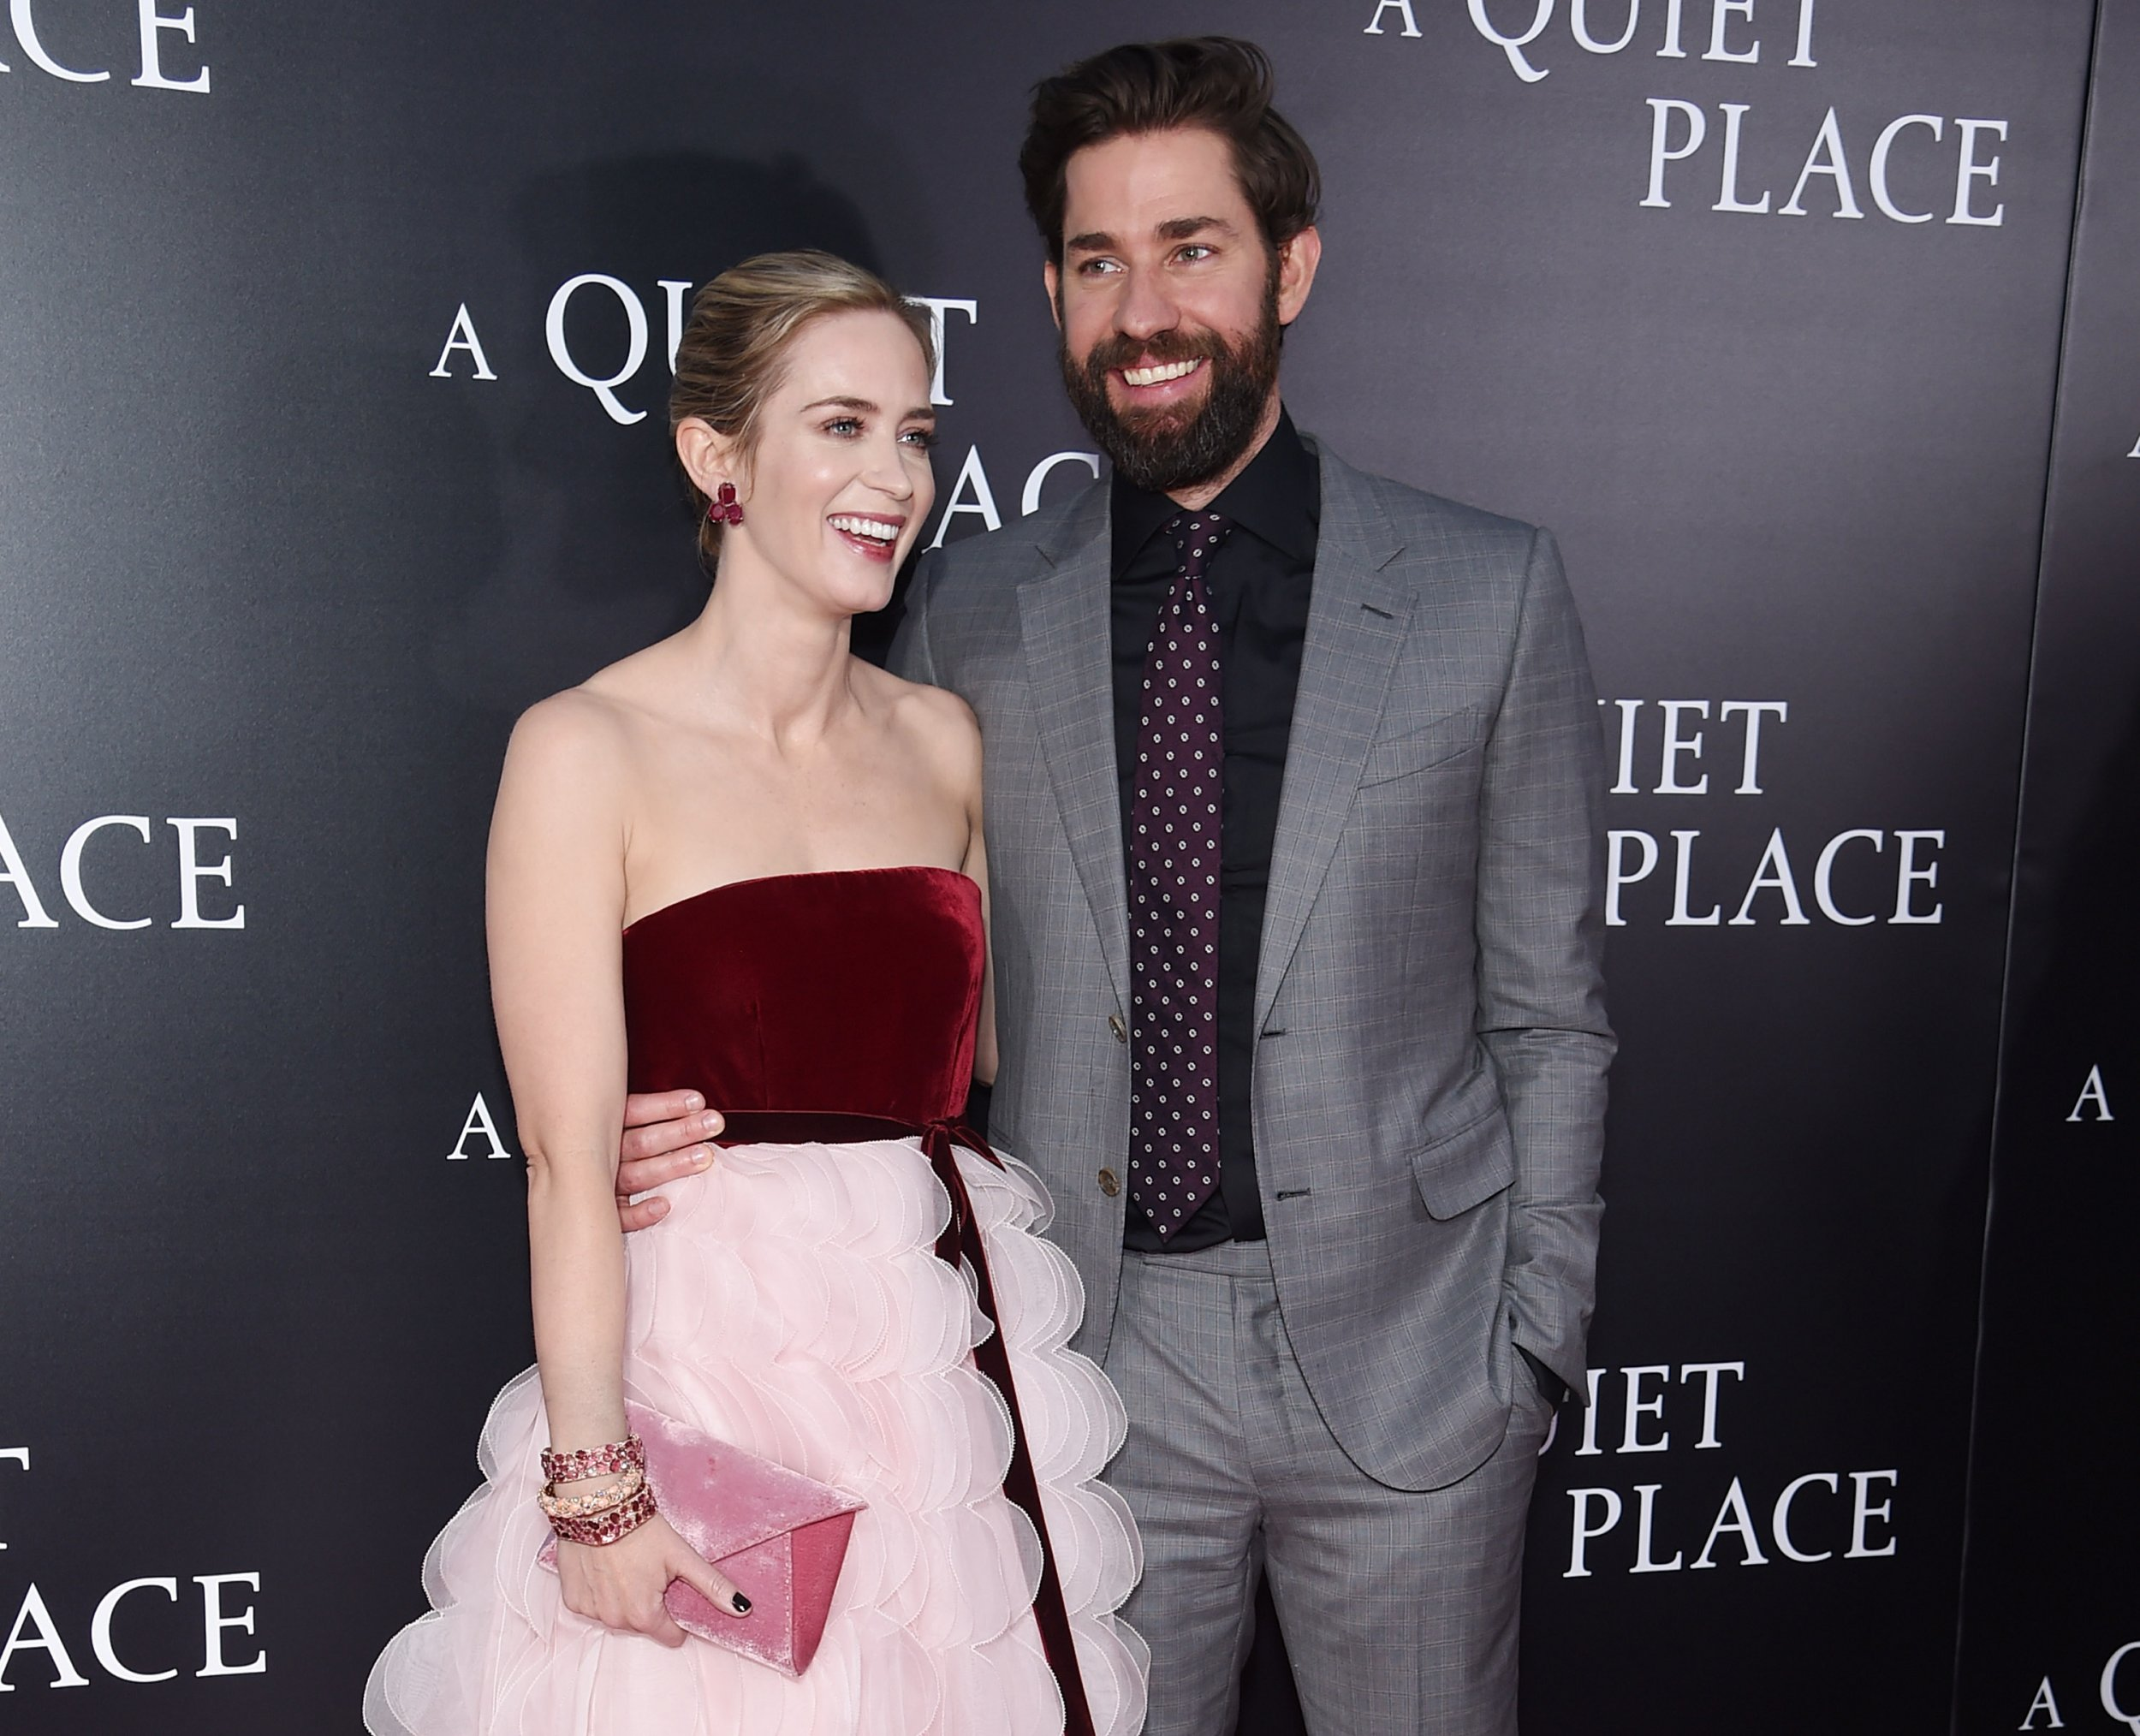 John Krasinski And Emily Blunt Said 'A Quiet Place' Wasn't